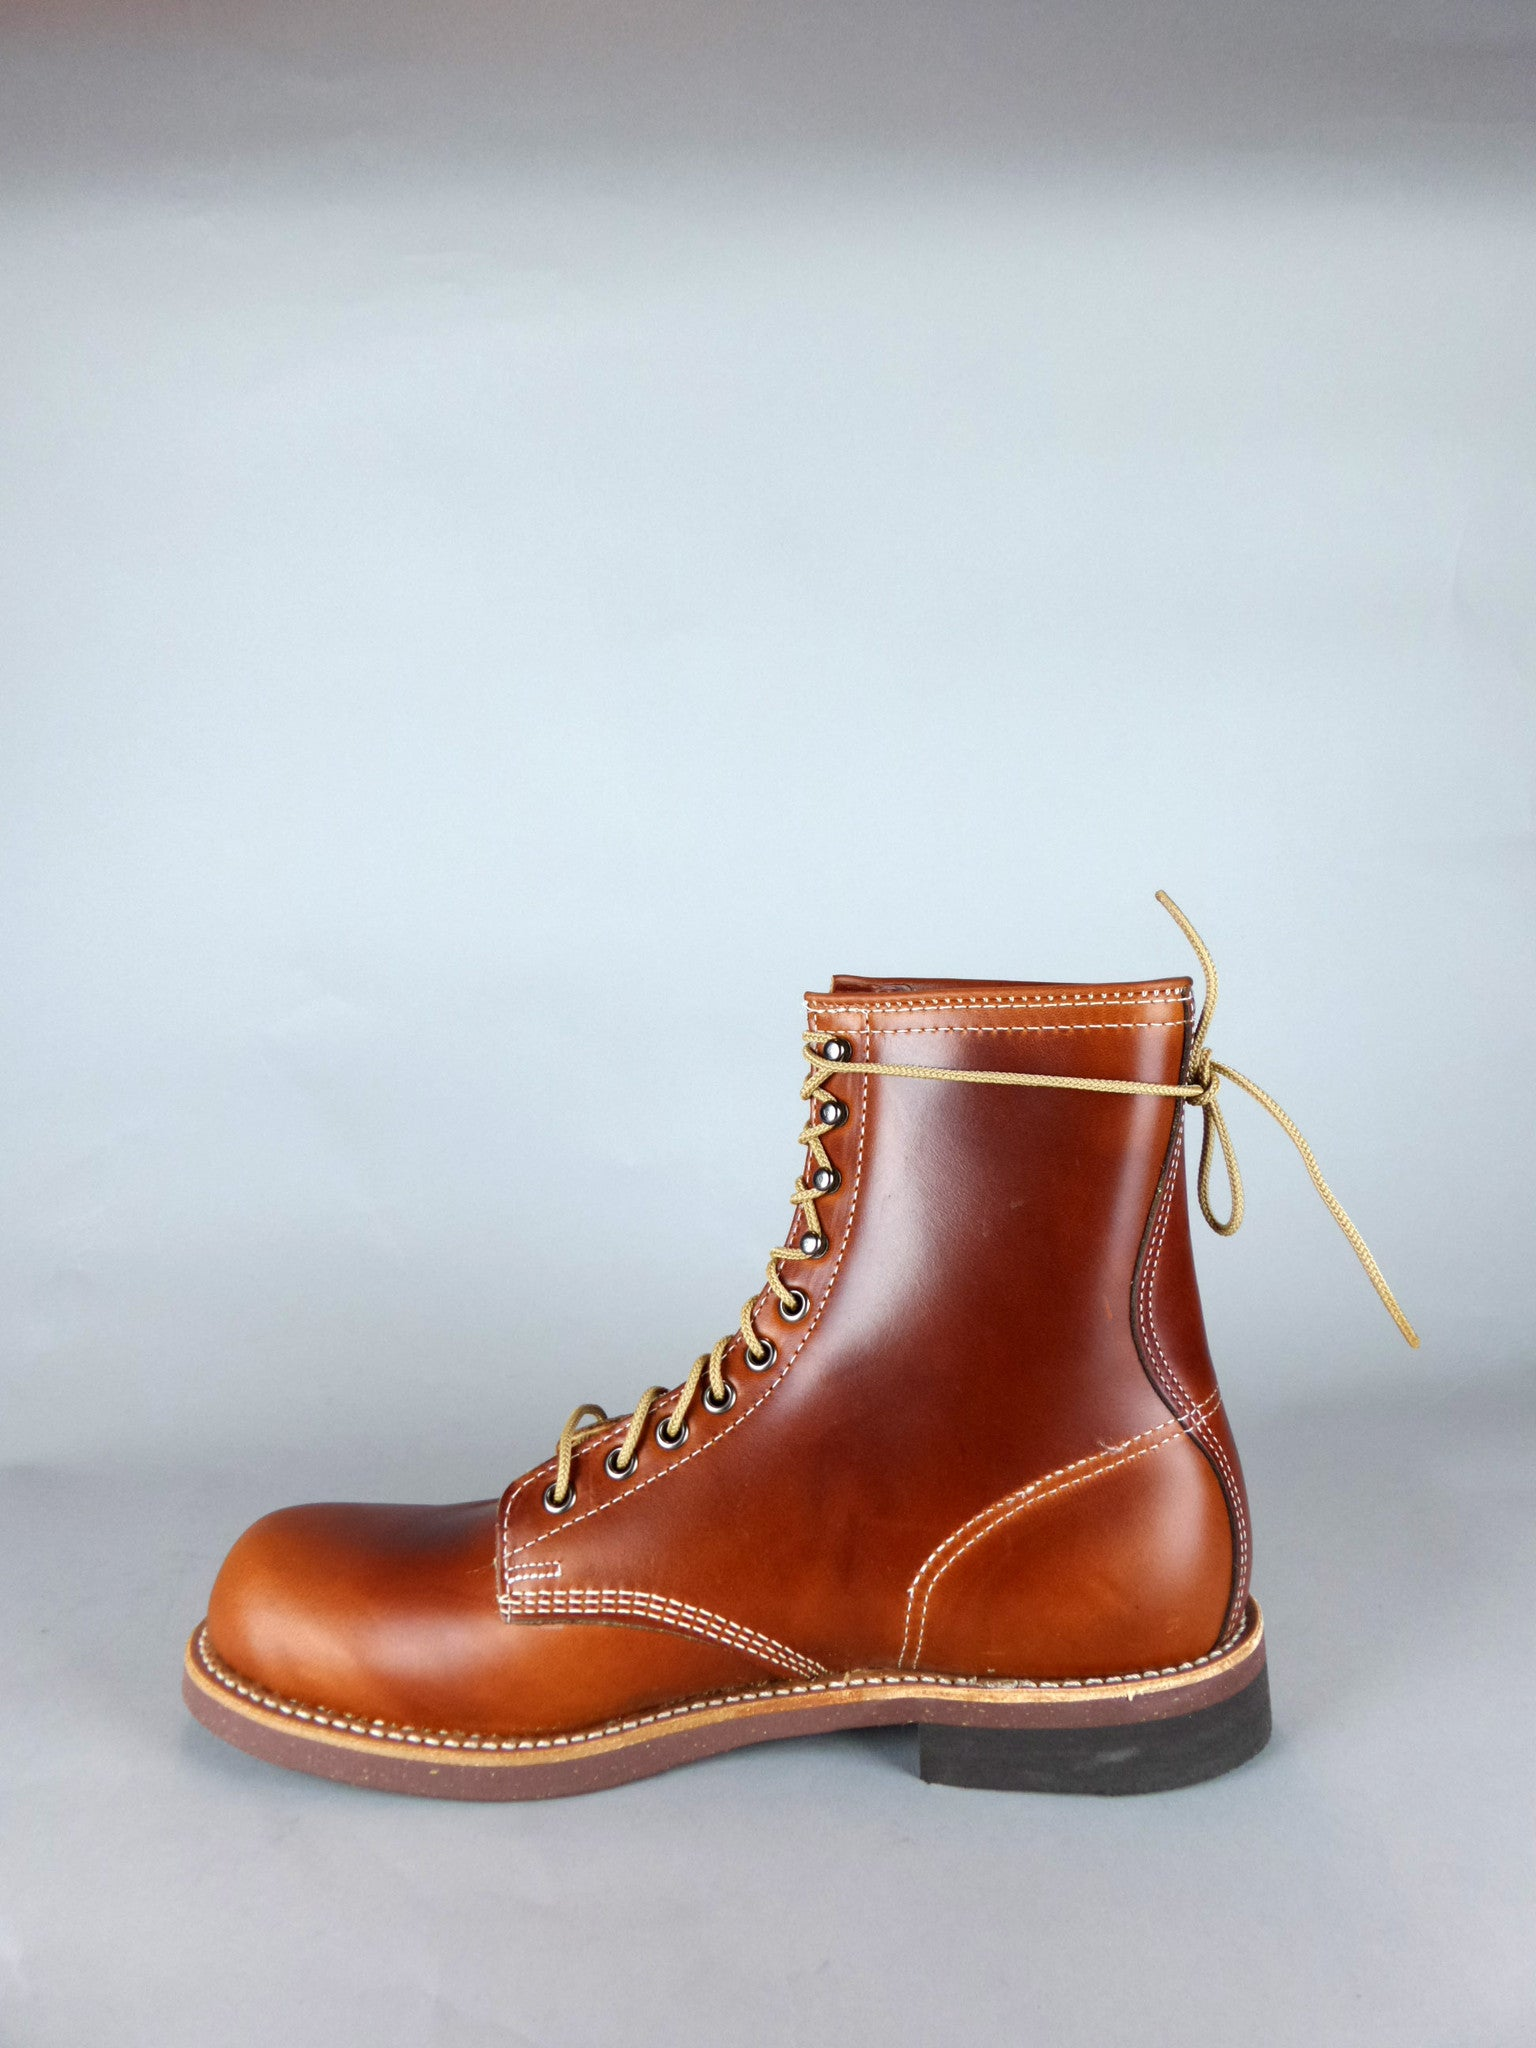 Thorogood 1892 Tomahawk 8 Inch Boots in